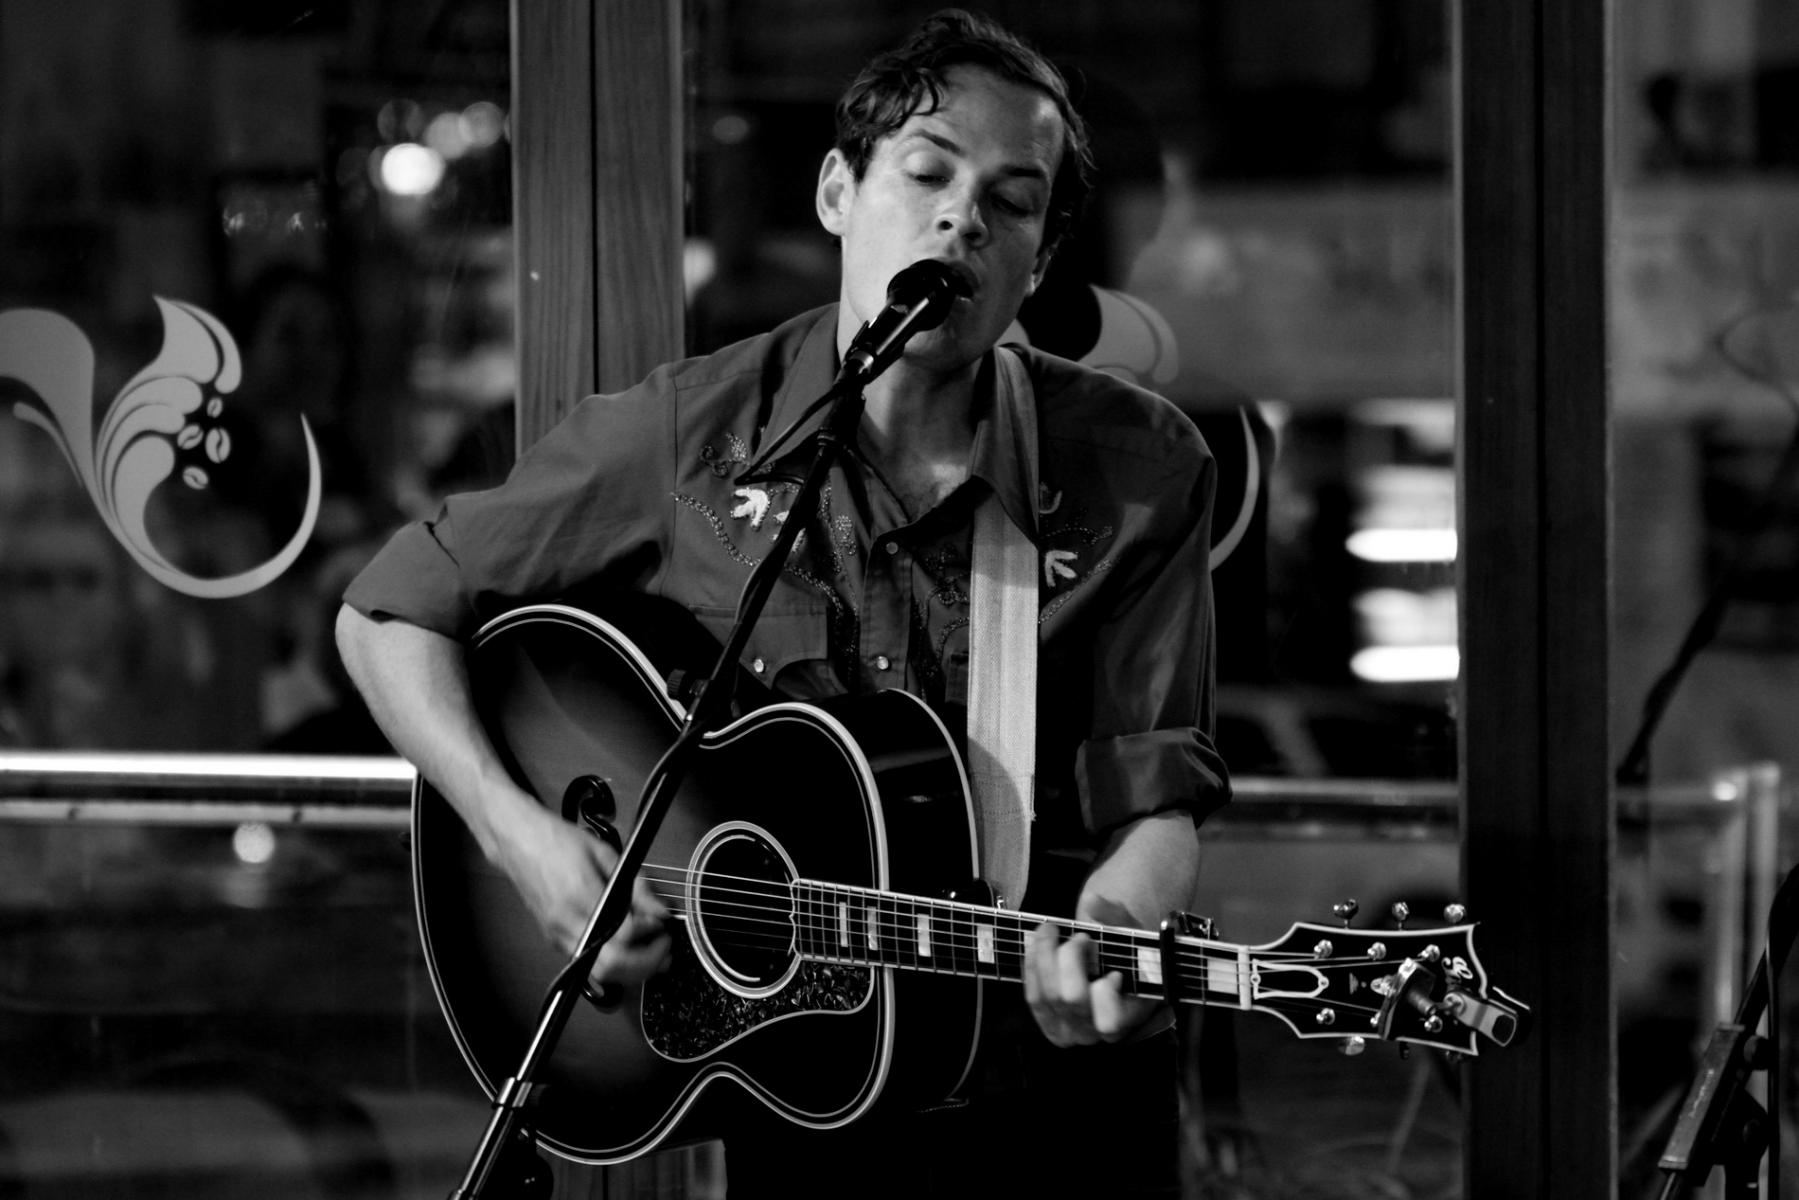 Cy Winstanley - Tattletale Saints - Correlli's Cafe - Oct 2012